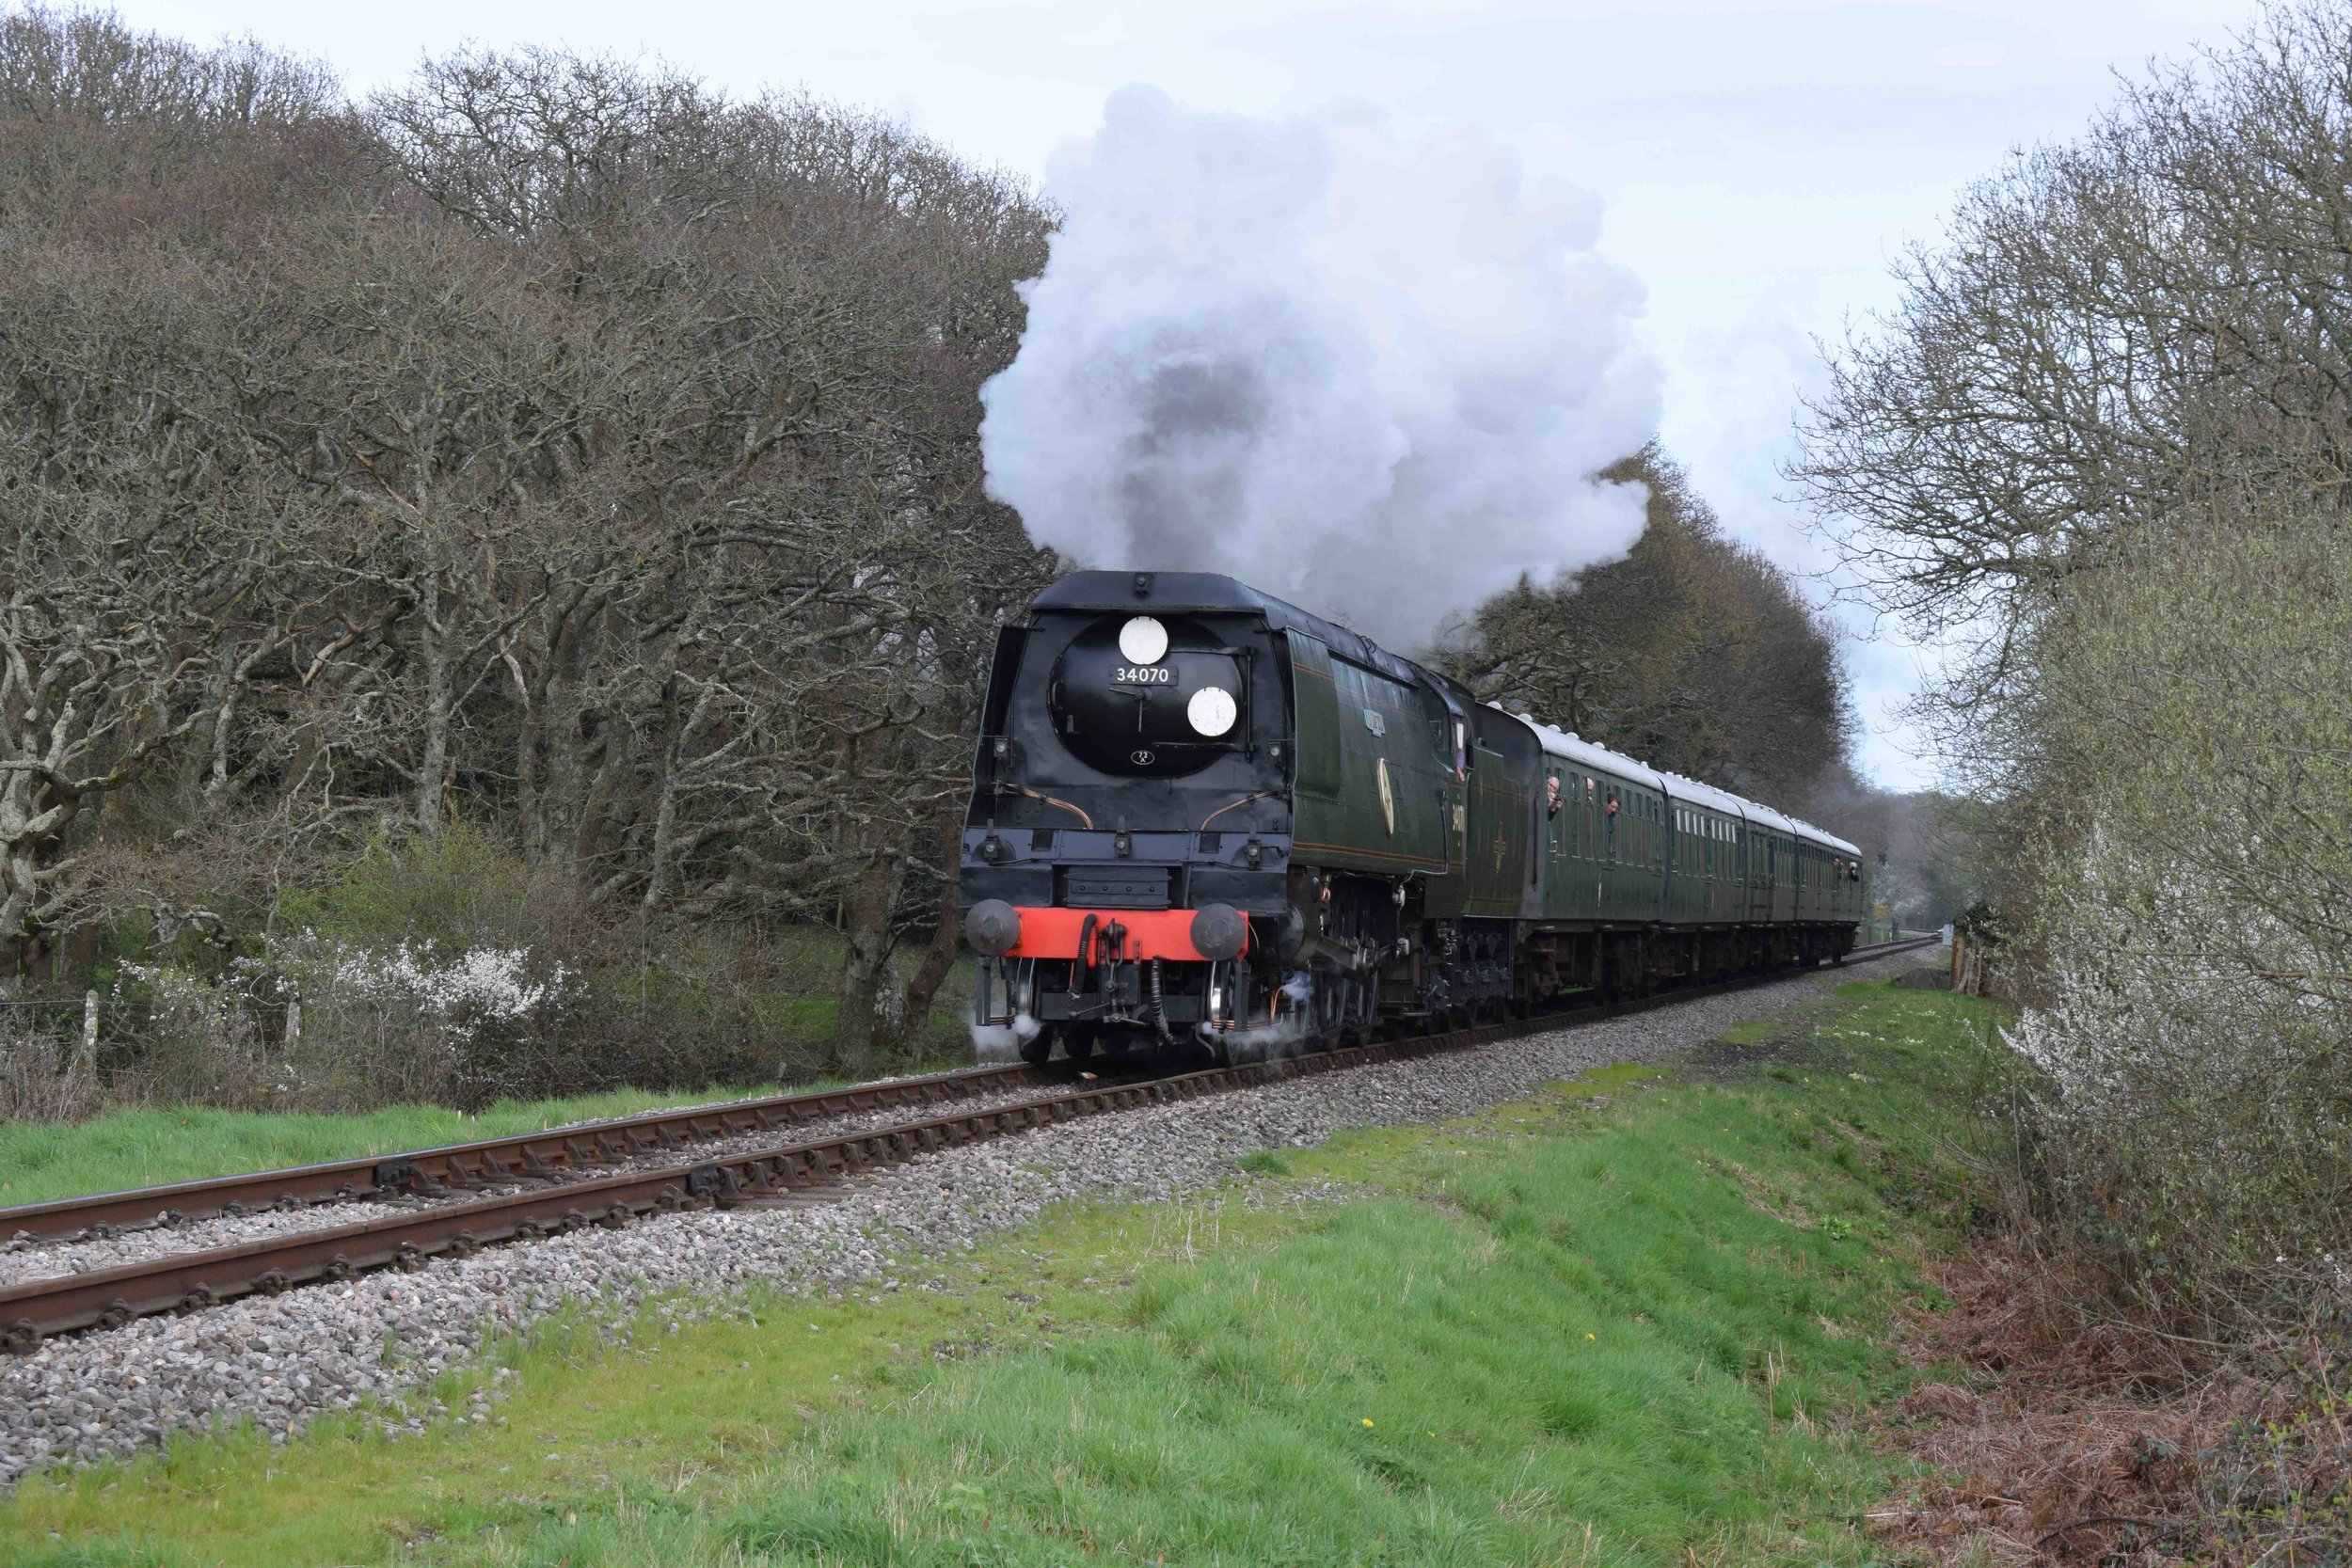 Out of action following a low-speed collision with Swanage stablemate BR '4MT' No. 80104, 'Battle of Britain' No. 34070  Manston  is pictured on March 31 during the railway's 'Strictly Bulleid' gala. THOMAS BRIGHT/SR